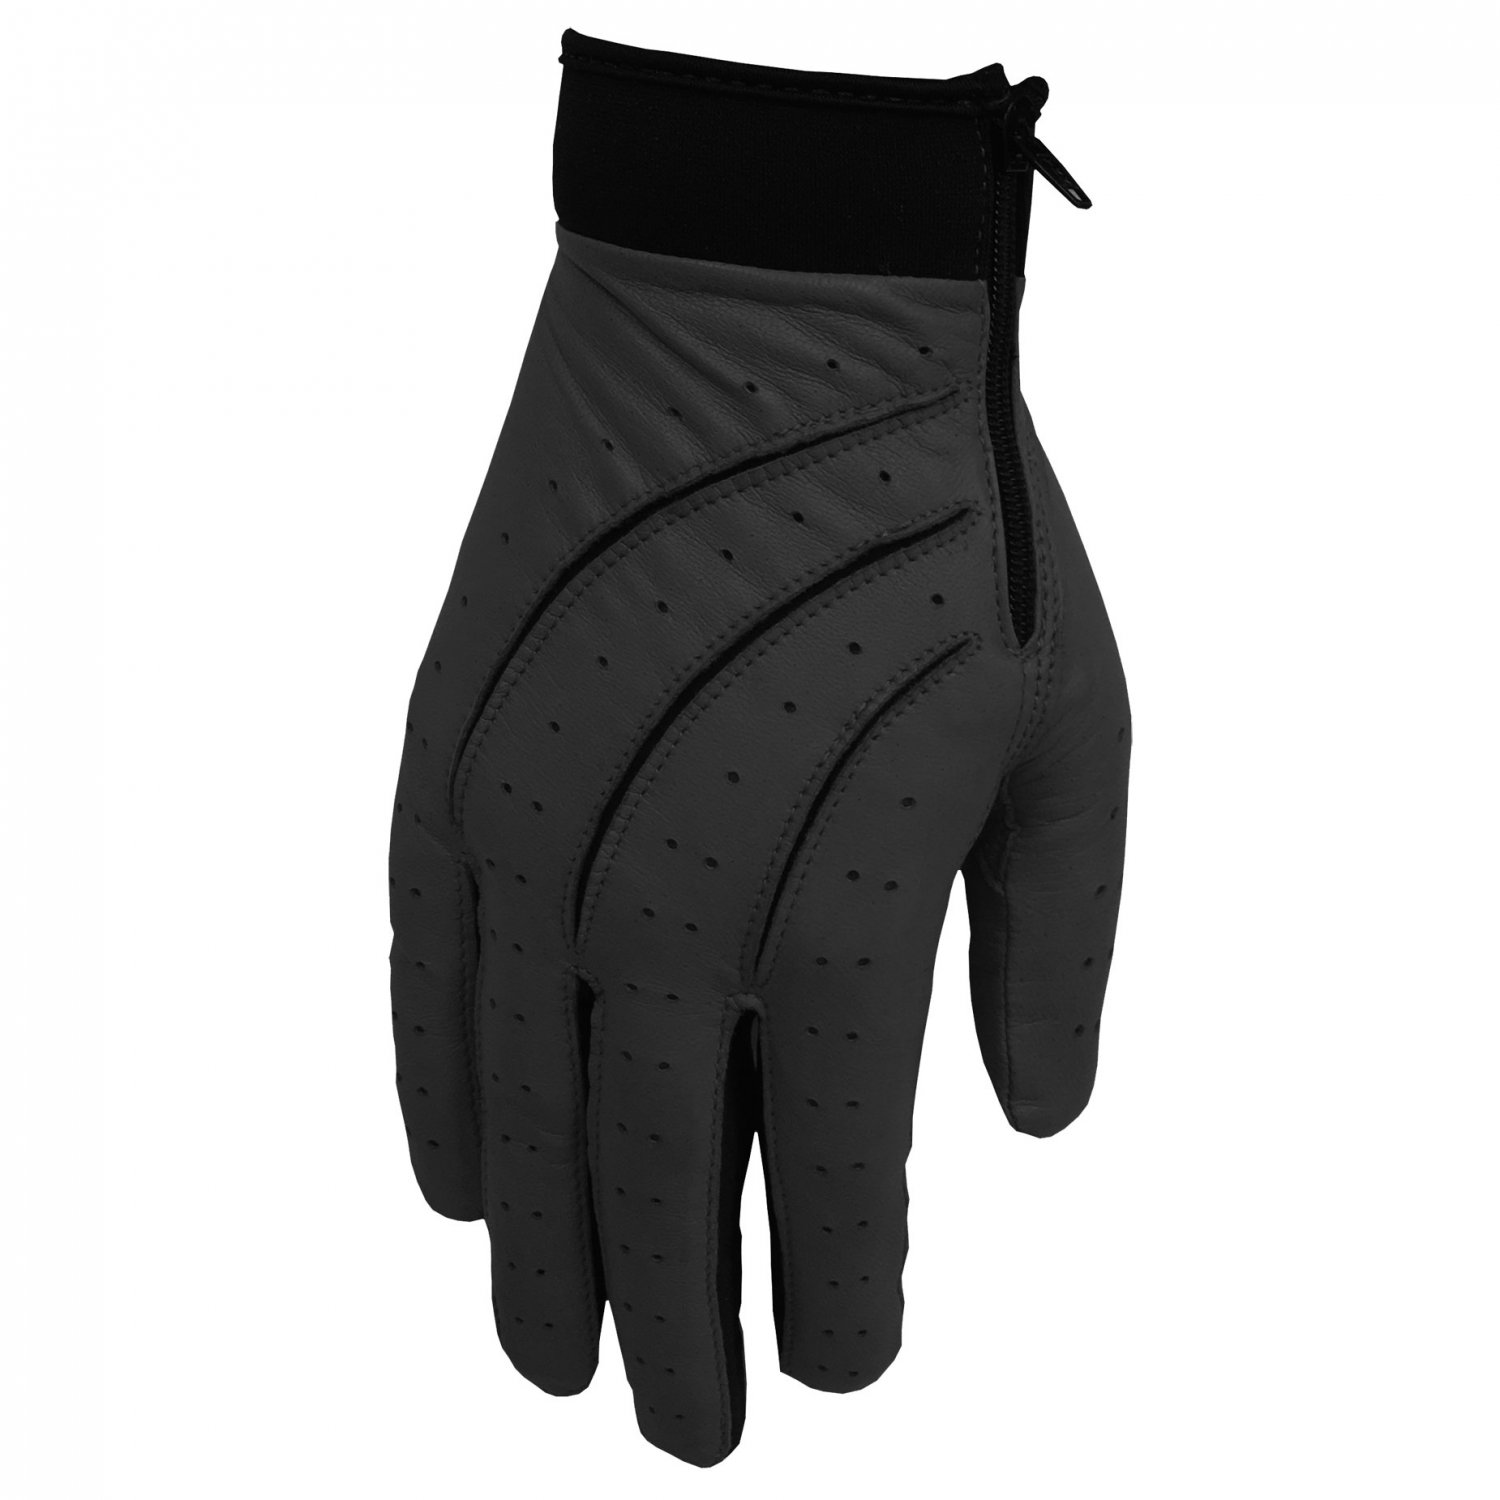 Hilts-Willard Men's Leather Stretch Driving Gloves - L - Black